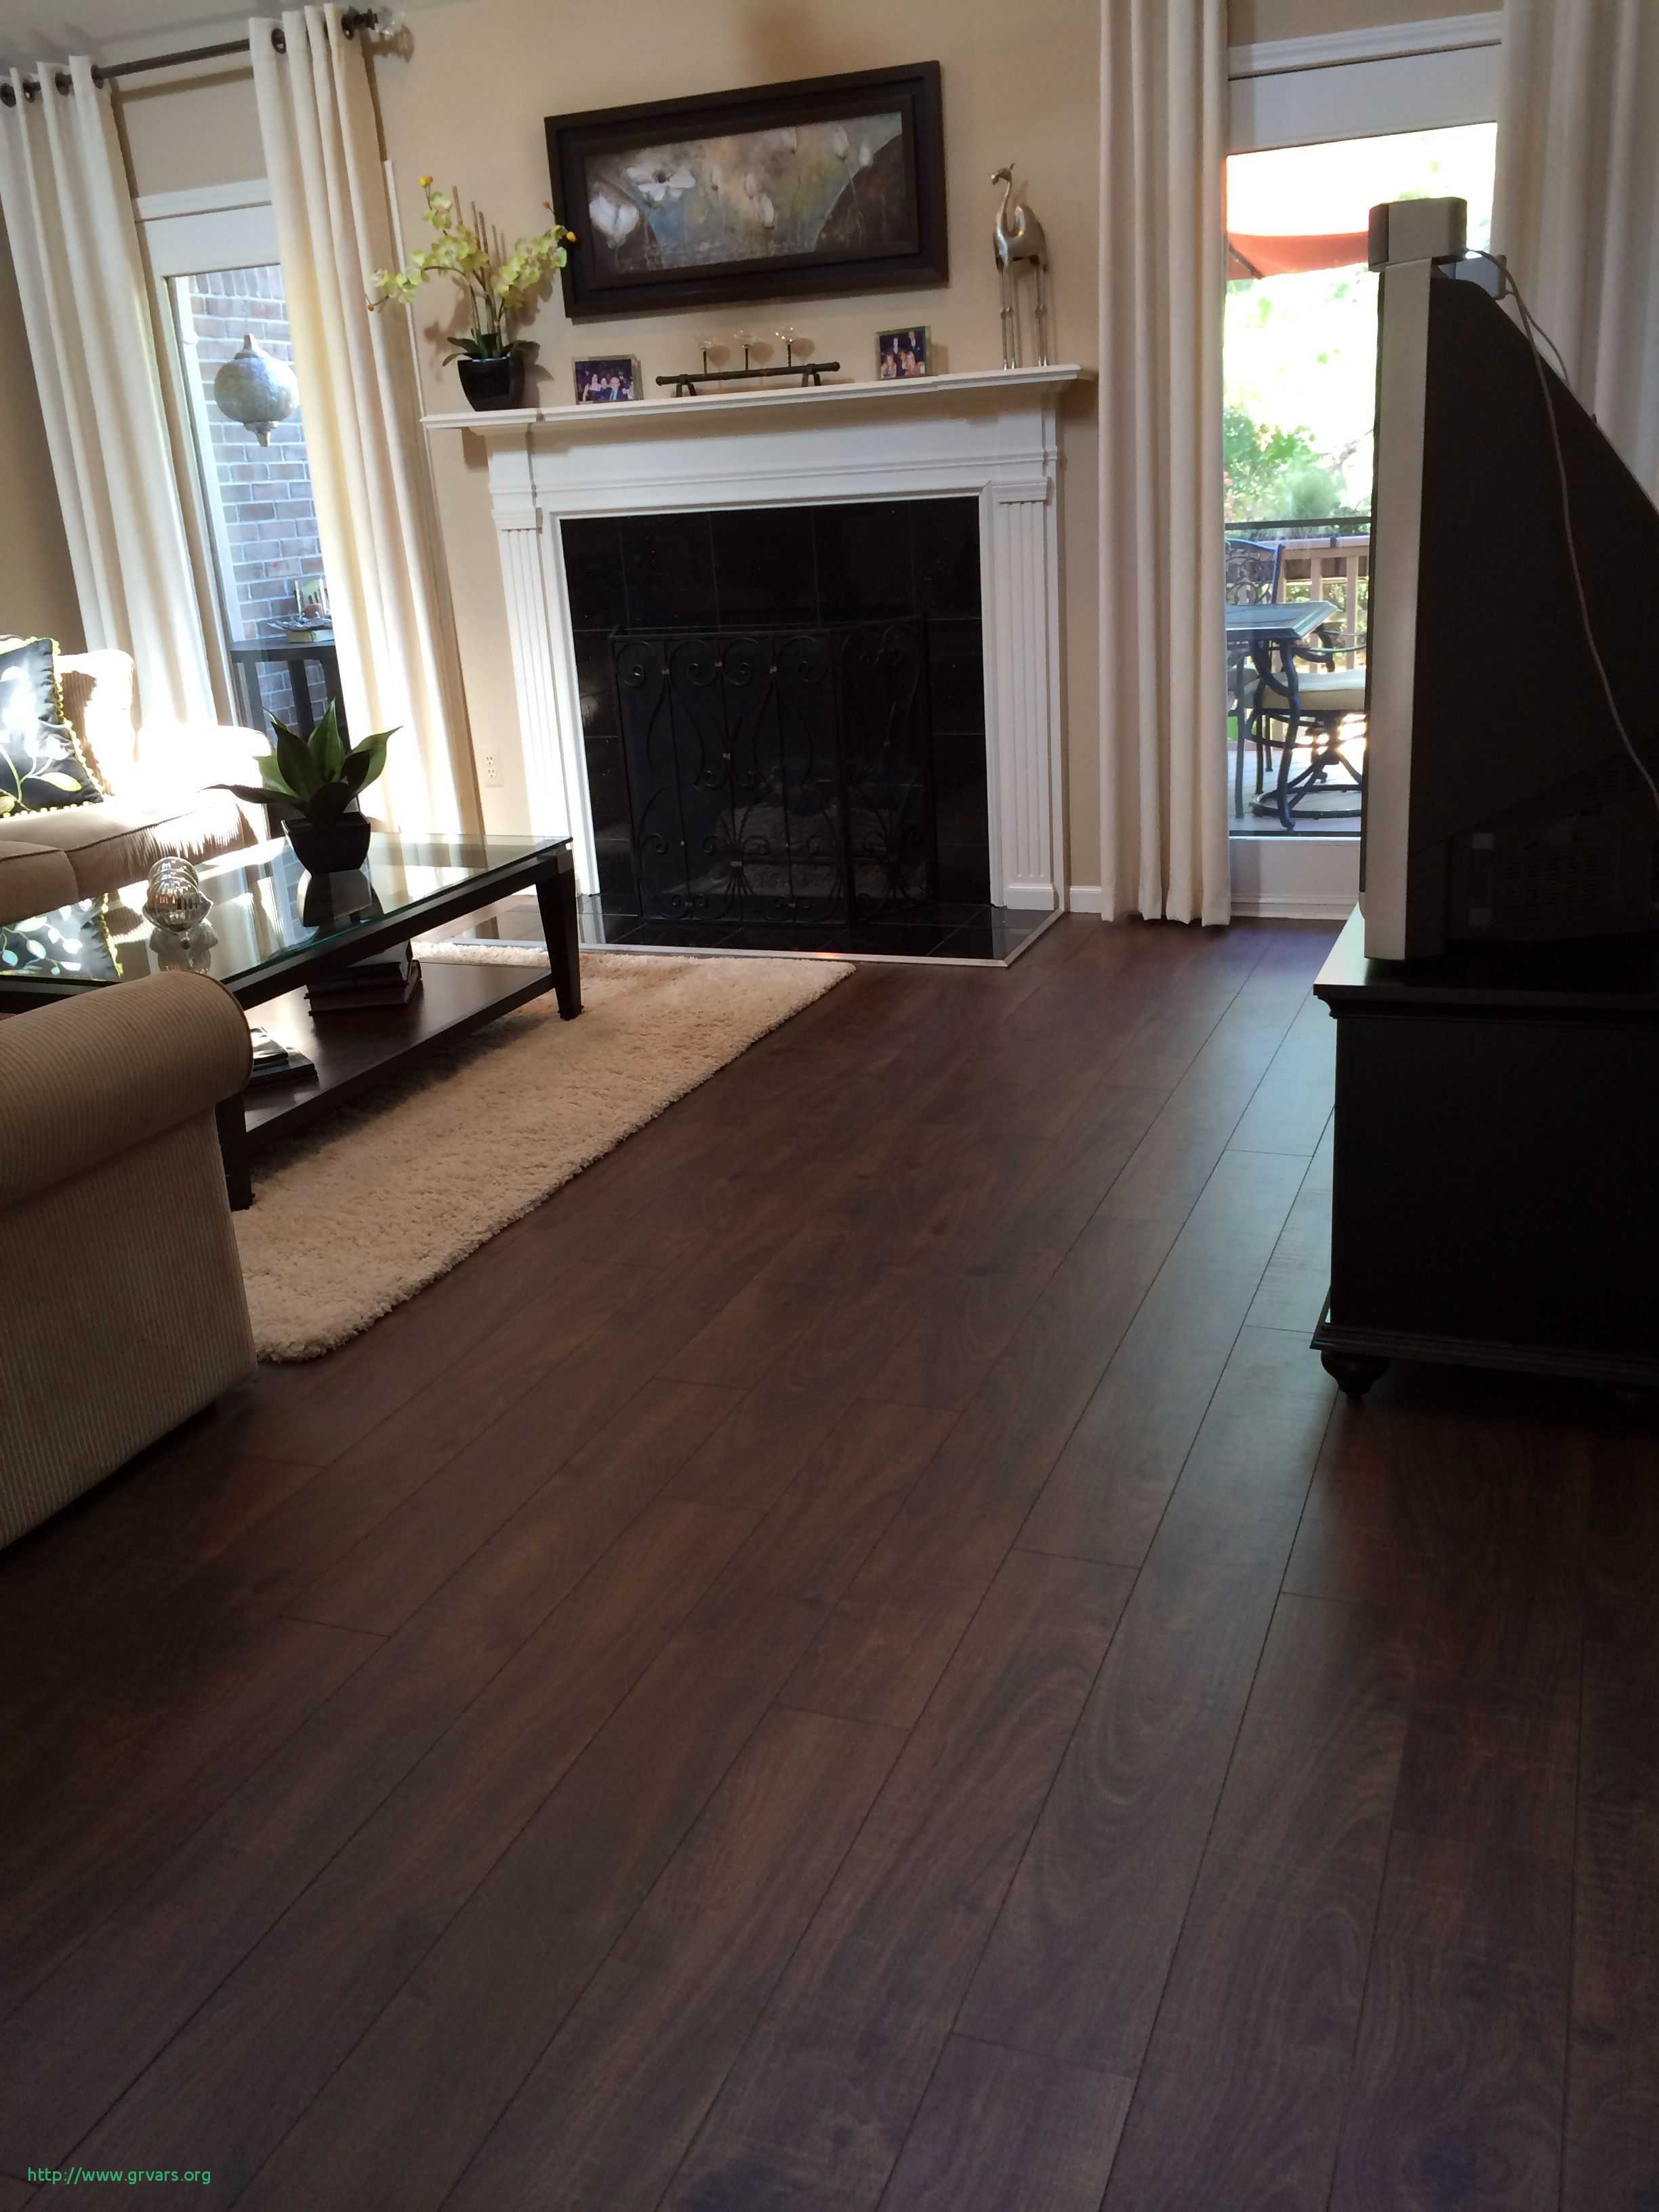 hardwood flooring options and cost of 24 luxe floors for less reviews ideas blog for pergo flooring lovely s media cache ak0 pinimg 736x 43 0d 97 inspiration of how to